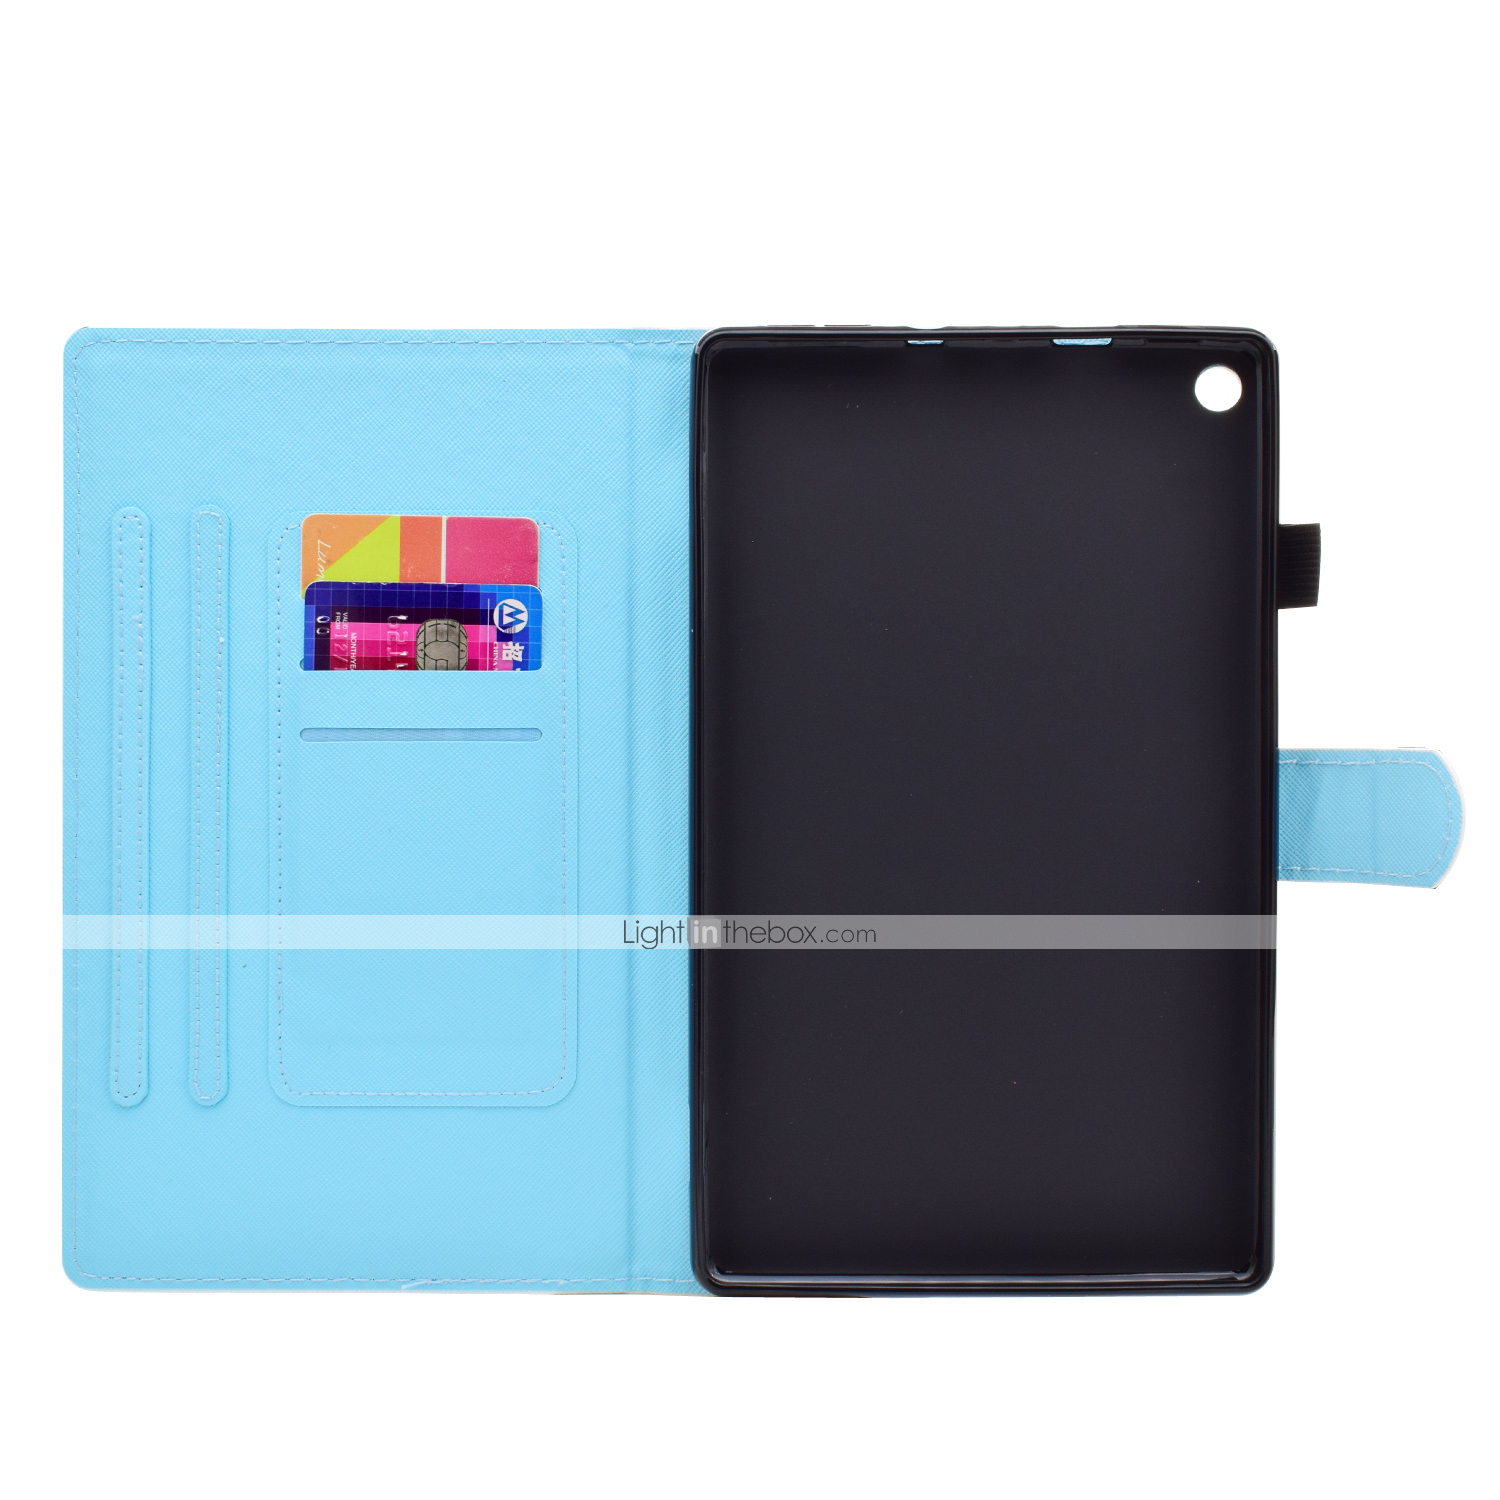 Case For Amazon Kindle Fire hd 8(7th Generation, 2017